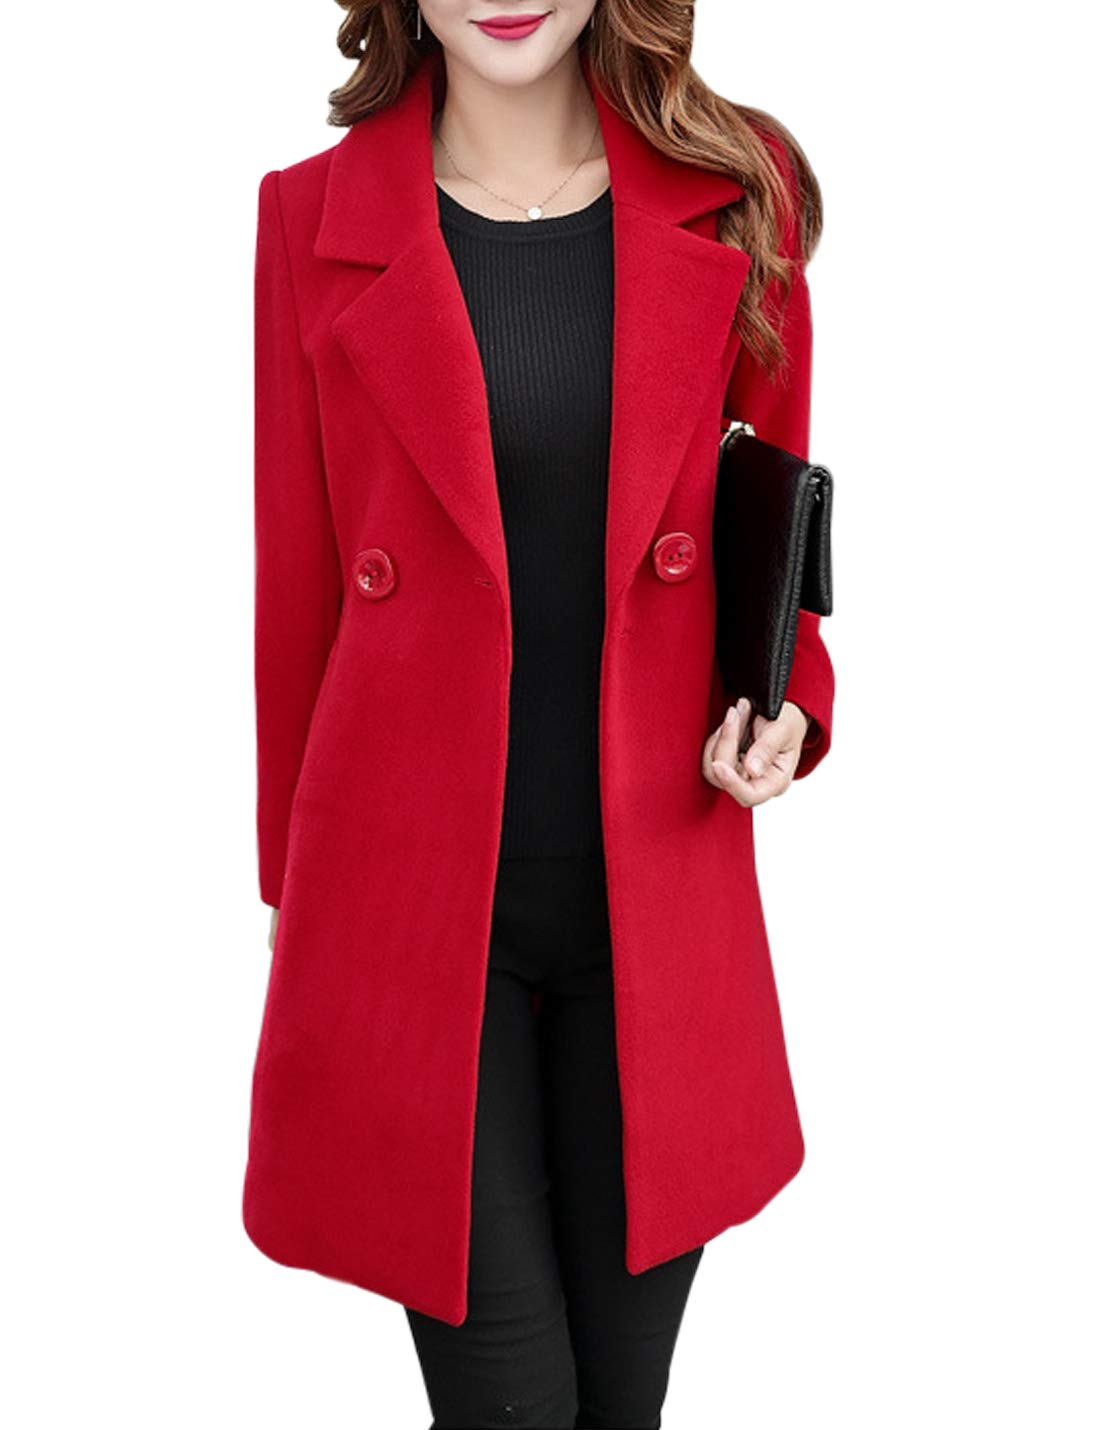 Jenkoon Women's Winter Outdoor Double Breasted Cotton Blend Pea Coat Jacket (Red, Large) by Jenkoon